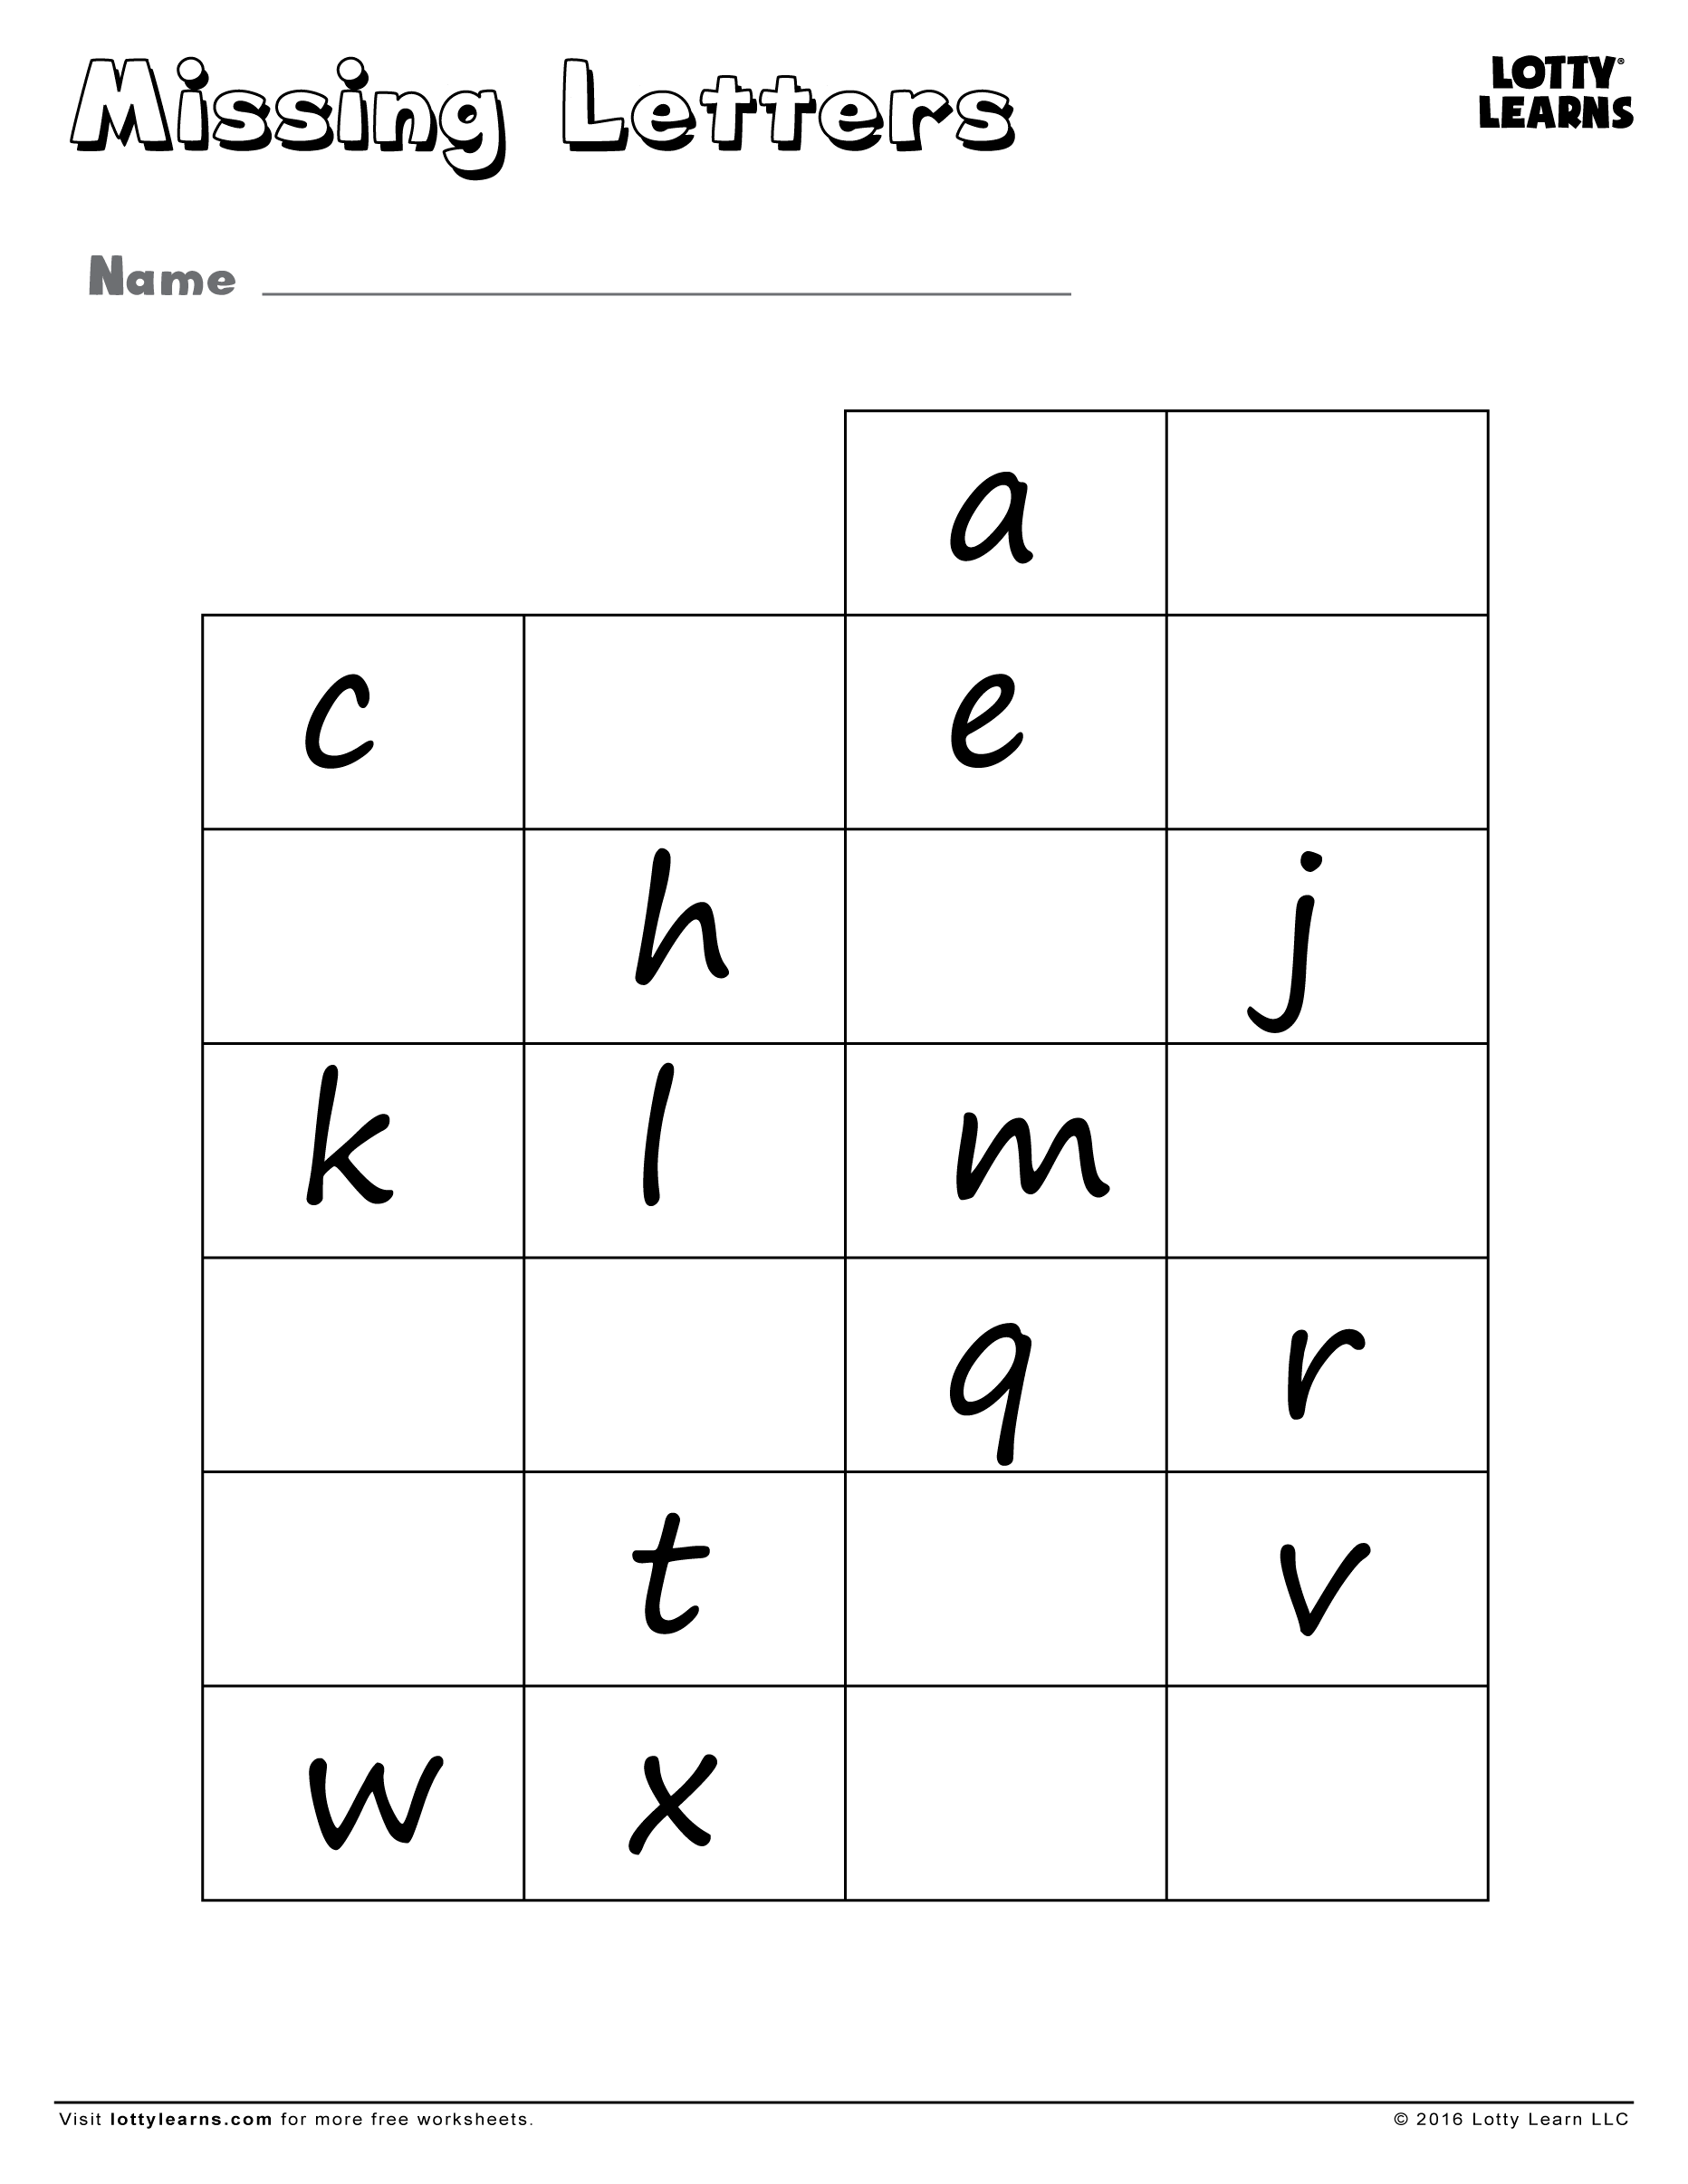 Missing Lowercase Letters